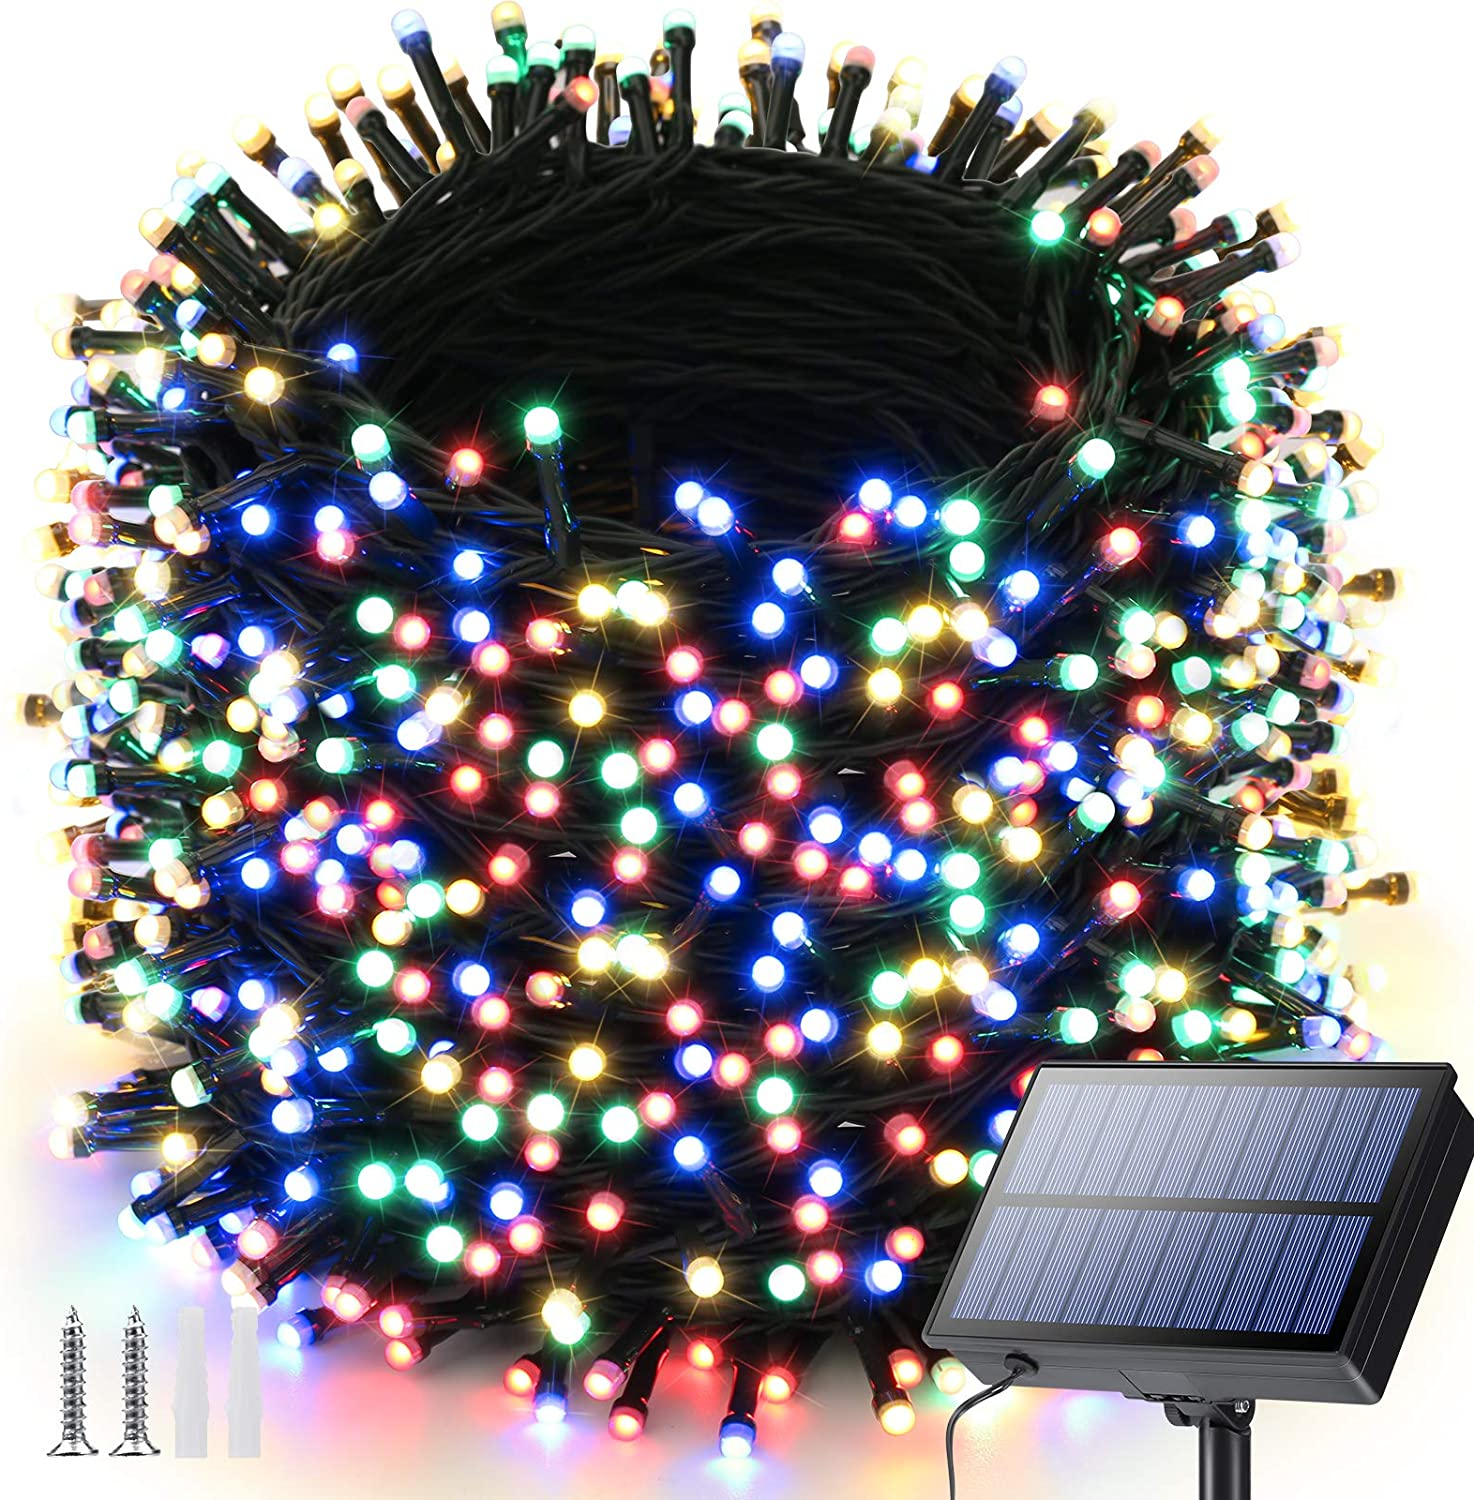 Solar String Lights Outdoor, 121ft 350 LED Solar Fairy Lights Outdoor with 8 Modes, Waterproof Outdoor String Lights for Garden, Yard, Party, Patio, Bedroom, Wedding, Holiday Decorations(Multicolor)